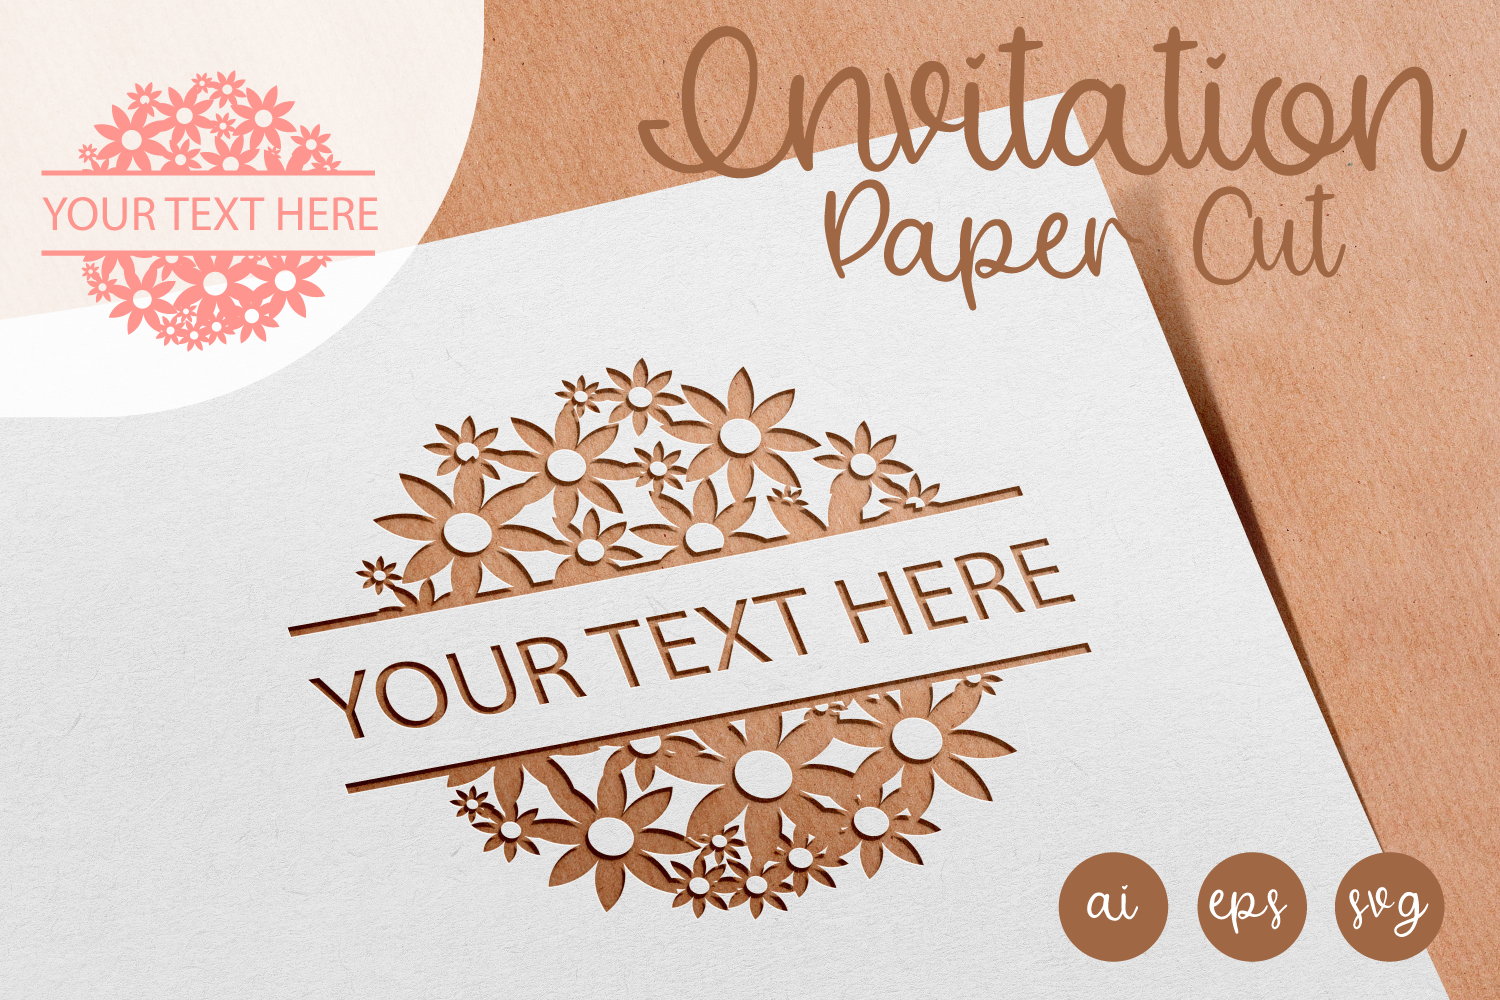 Round Flowery Invitation Paper Cut AI, SVG, EPS example image 1